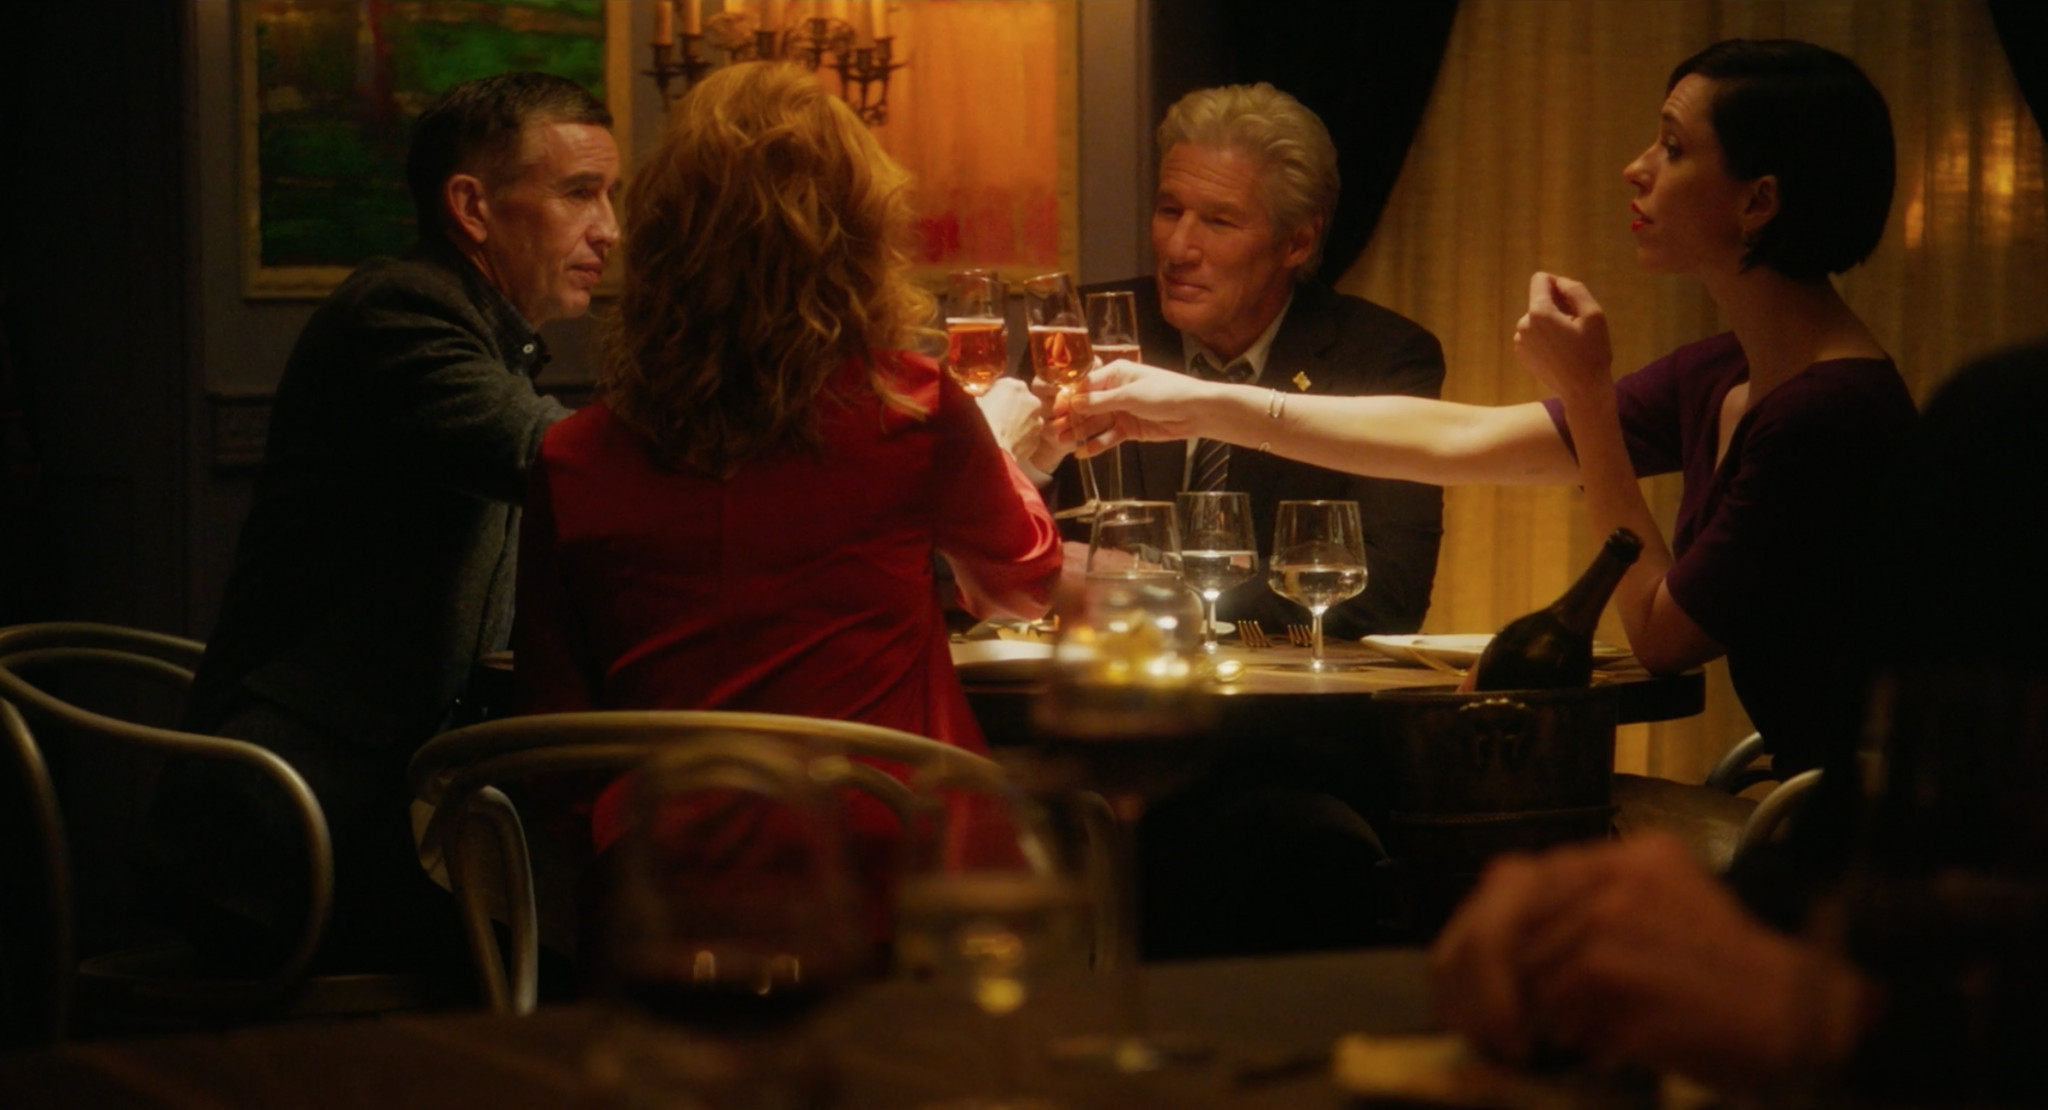 The Dinner Cast  Richard Gere and the Cast of The Dinner at the Tribeca